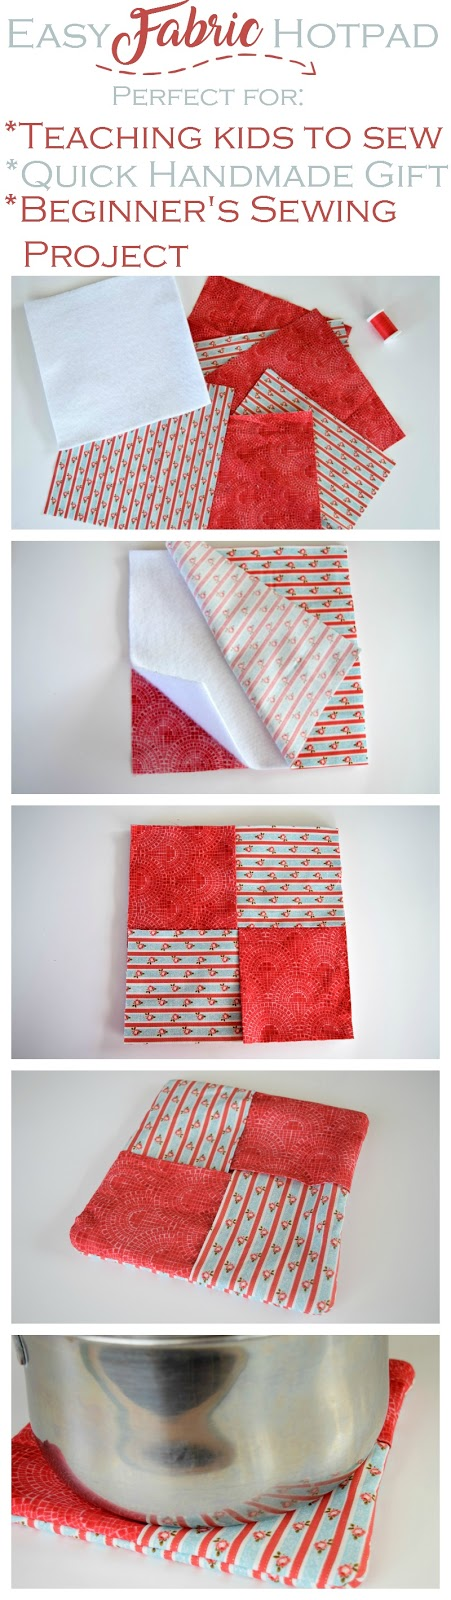 Hot Pad Patterns To Sew Images - origami instructions easy for kids